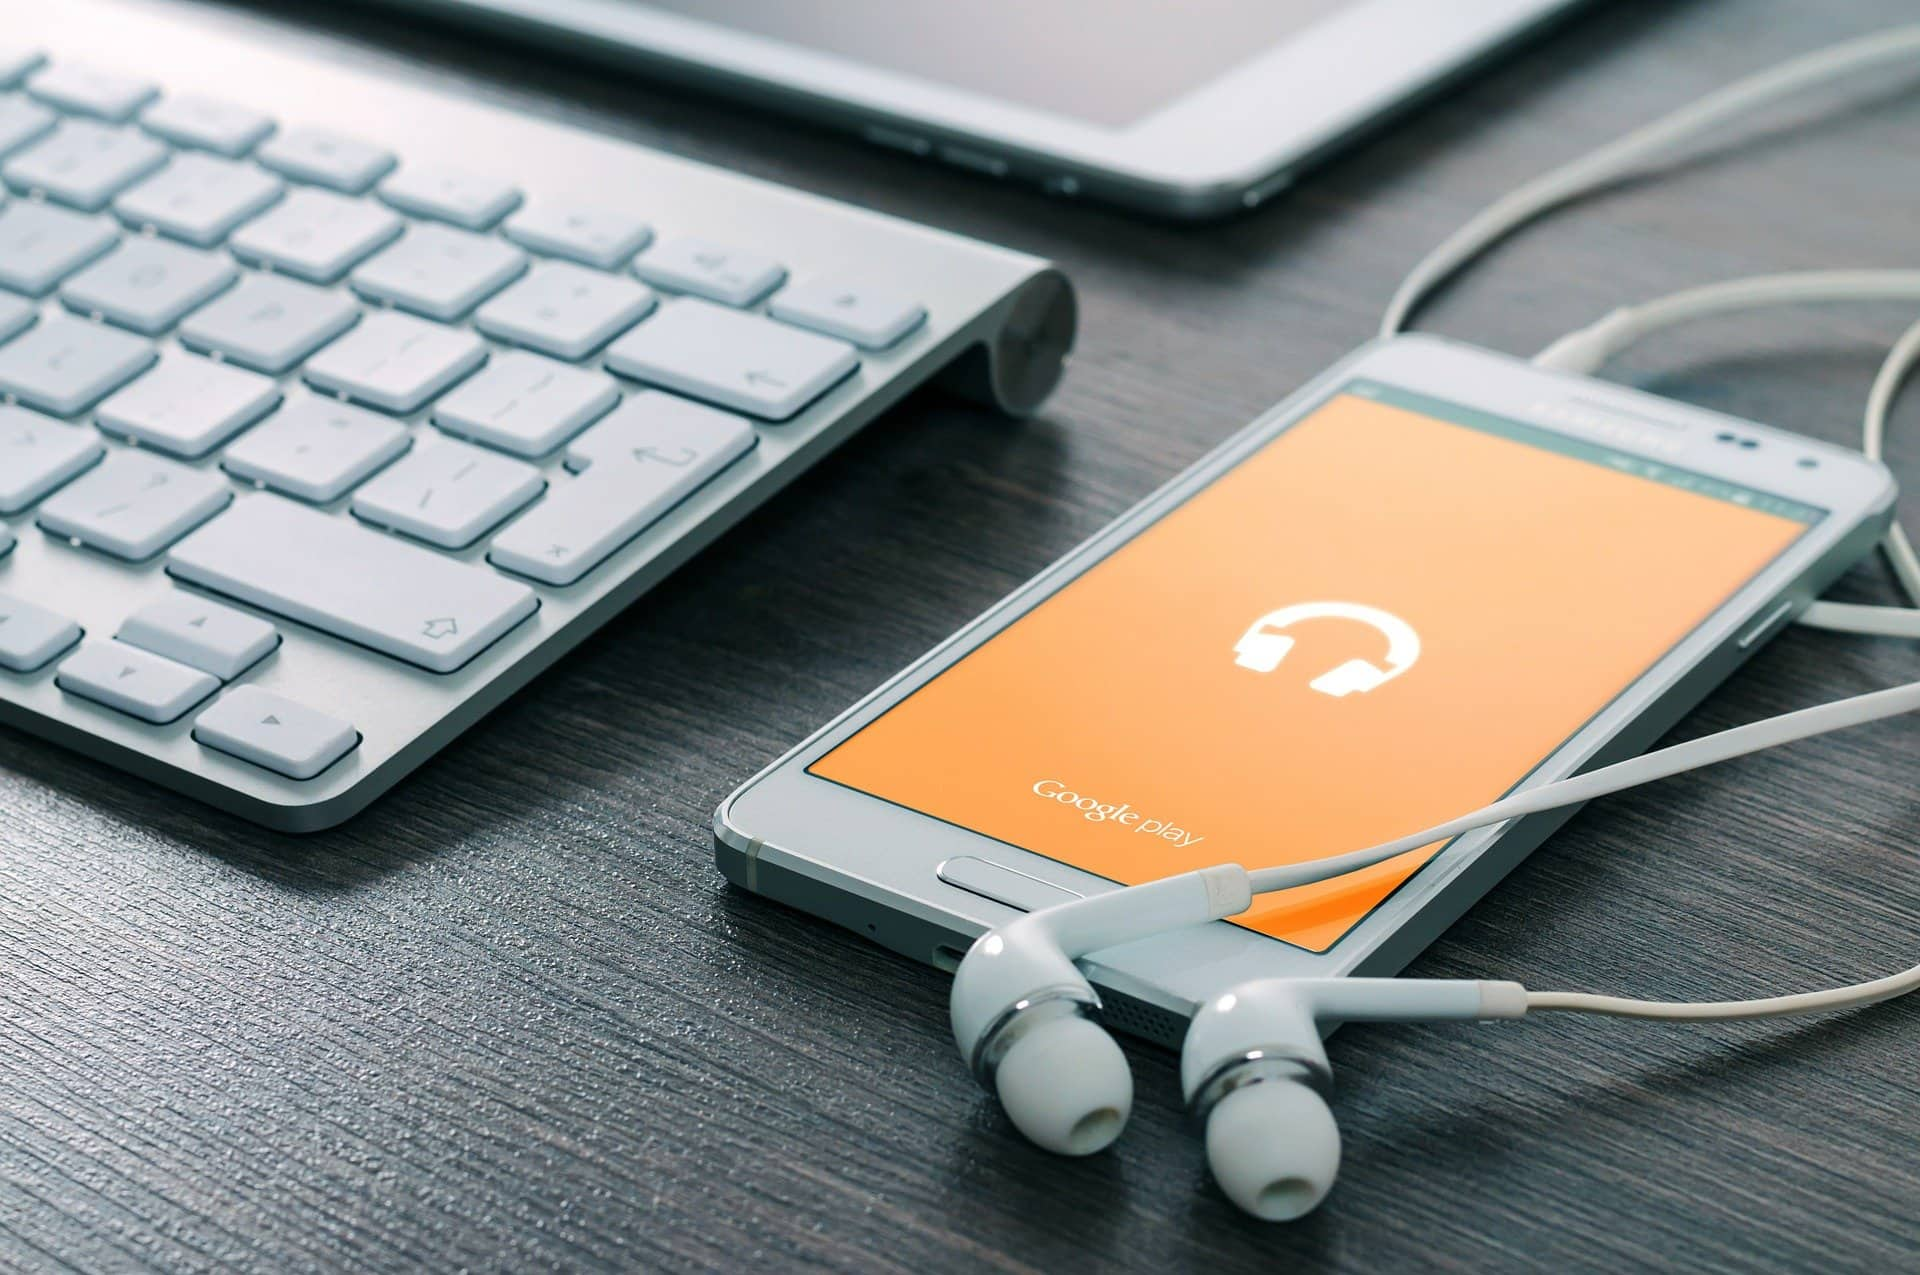 6 productivity podcast suggestions from the JotForm marketing team